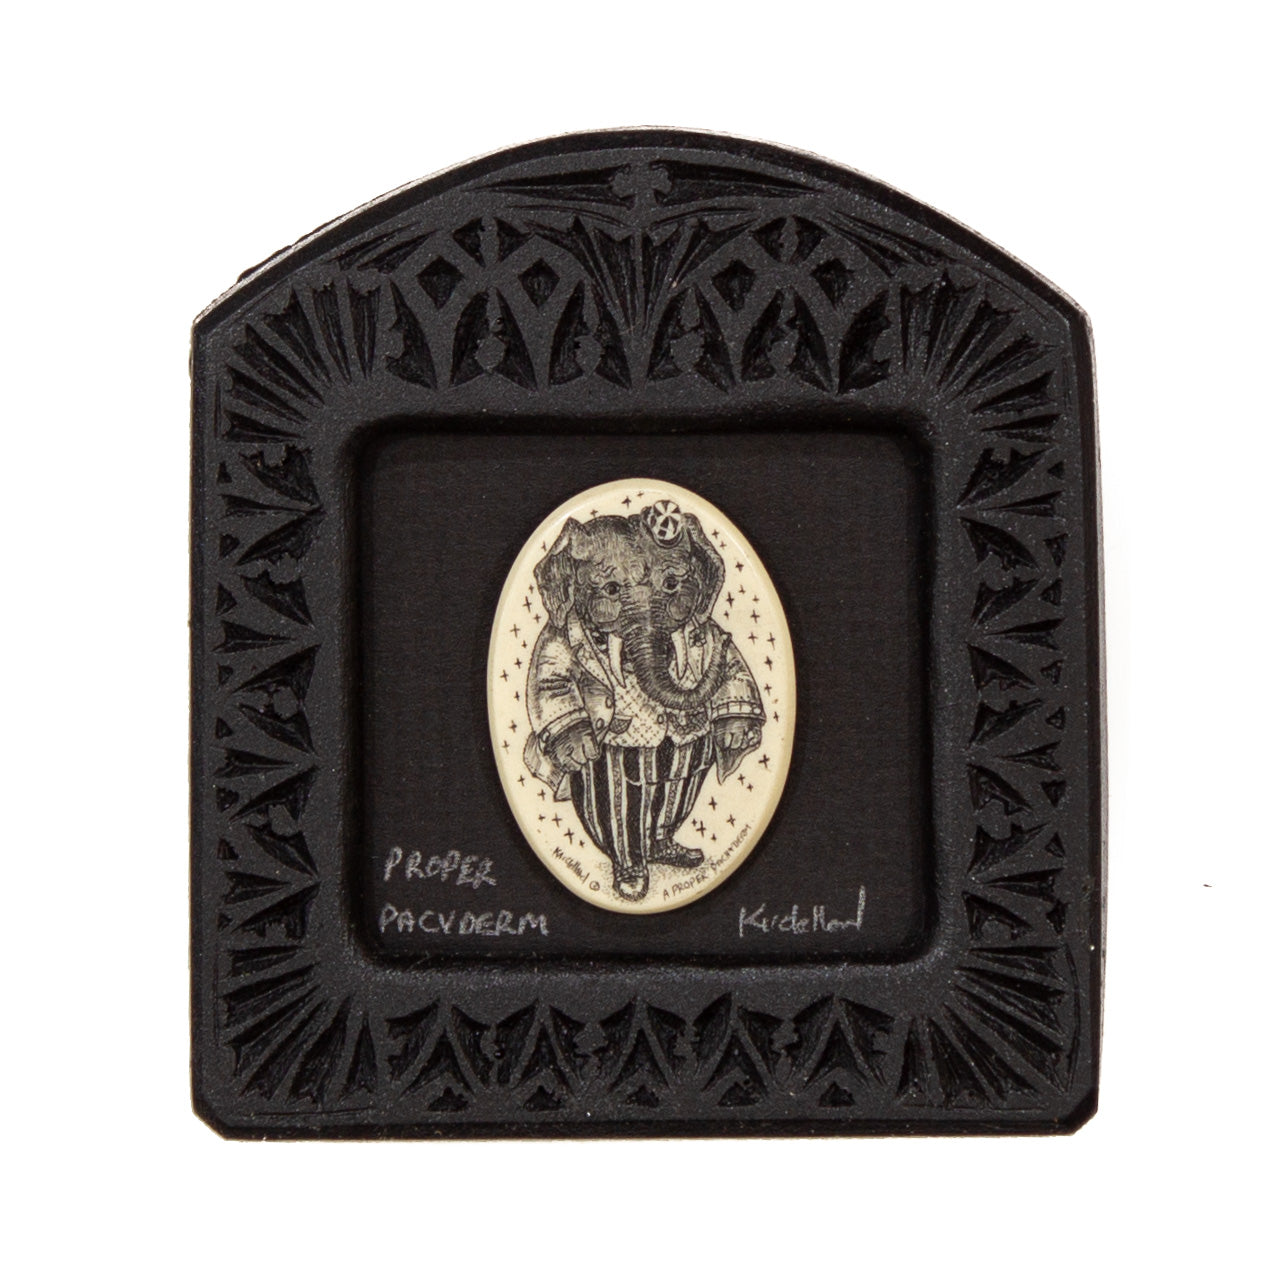 """Proper Pacyderm"" Small Chip Carved Frame"